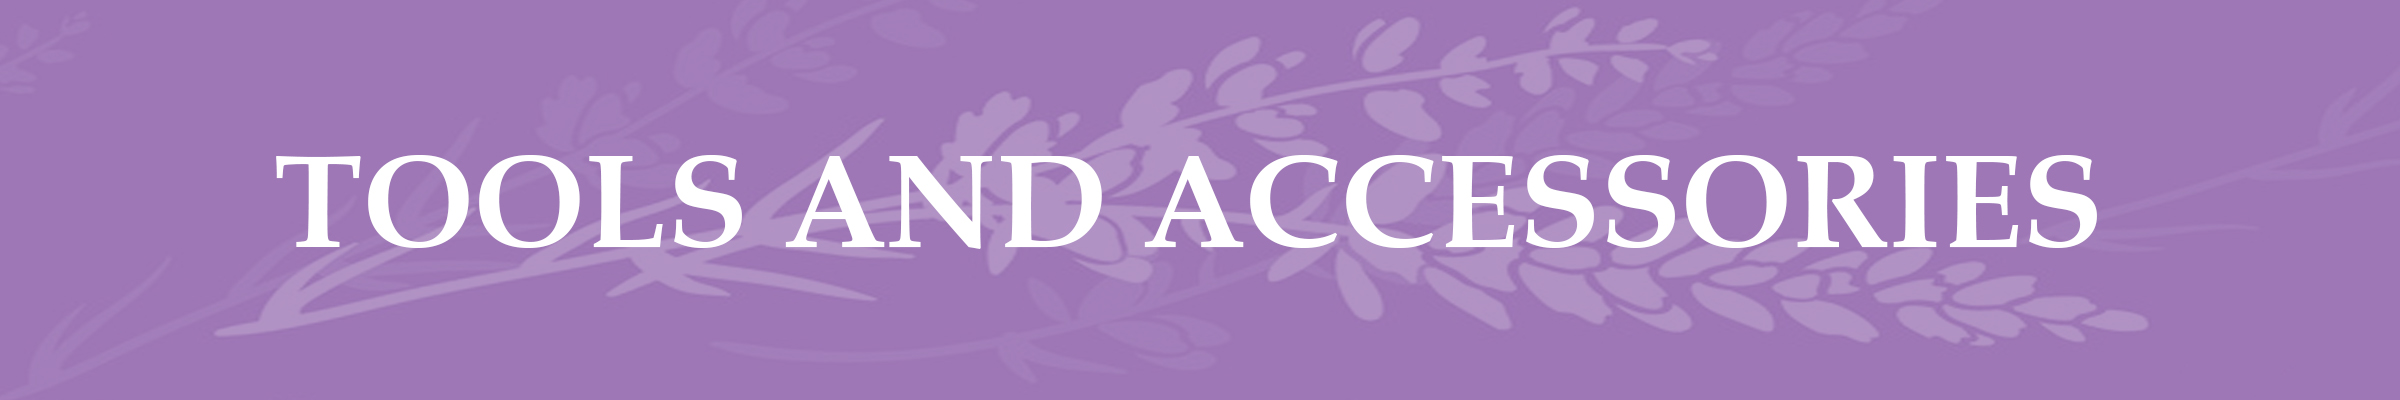 Lavender Page Header Tools and Accessories